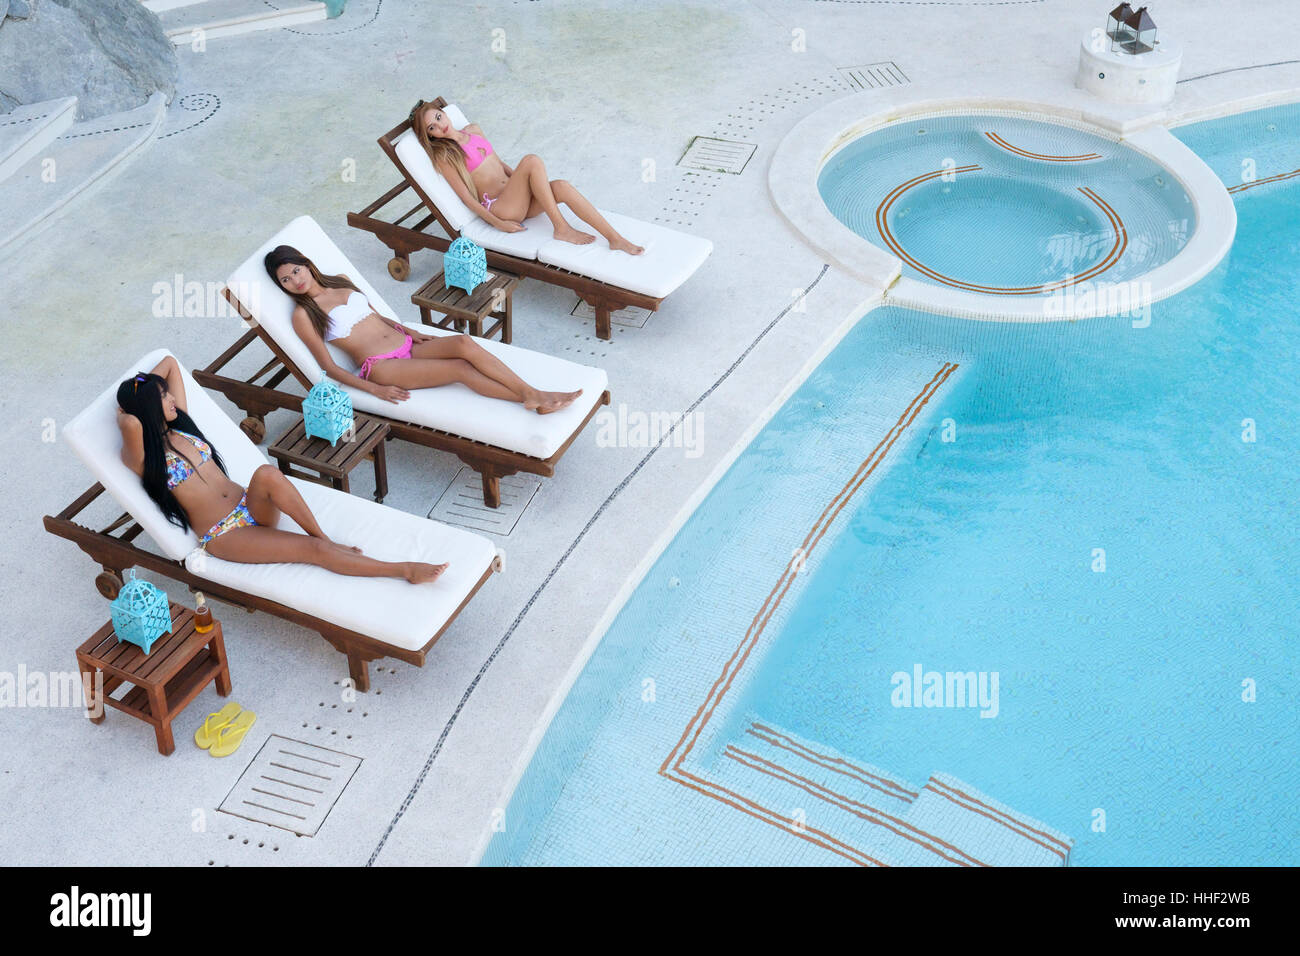 Three young attractive hispanic women using loungers for tanning next to swimming pool - Stock Image